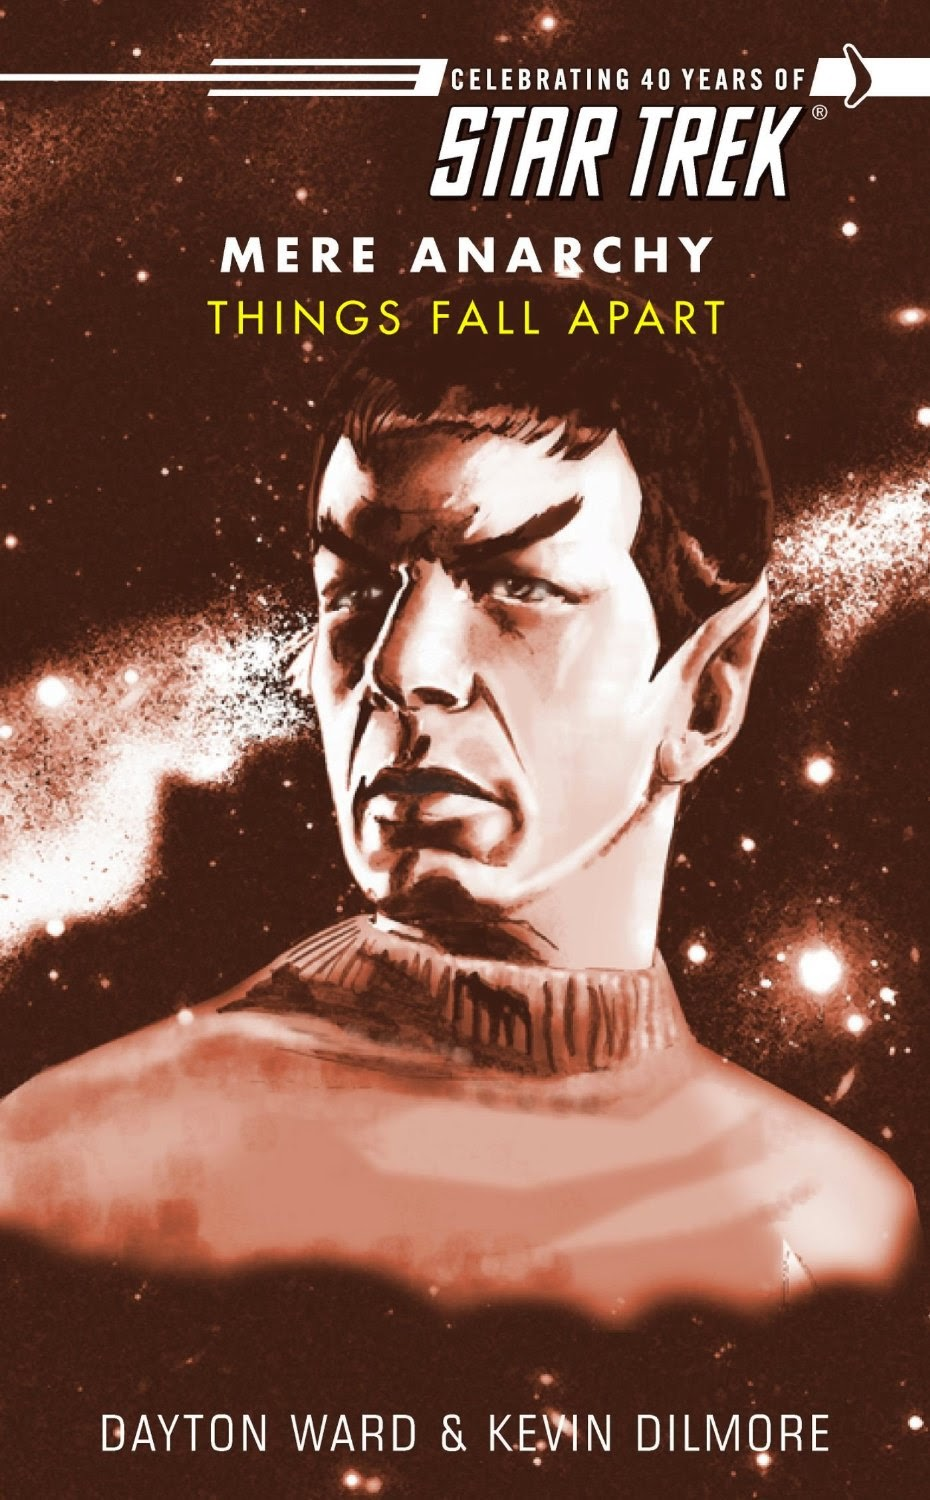 Things fall apart literature review